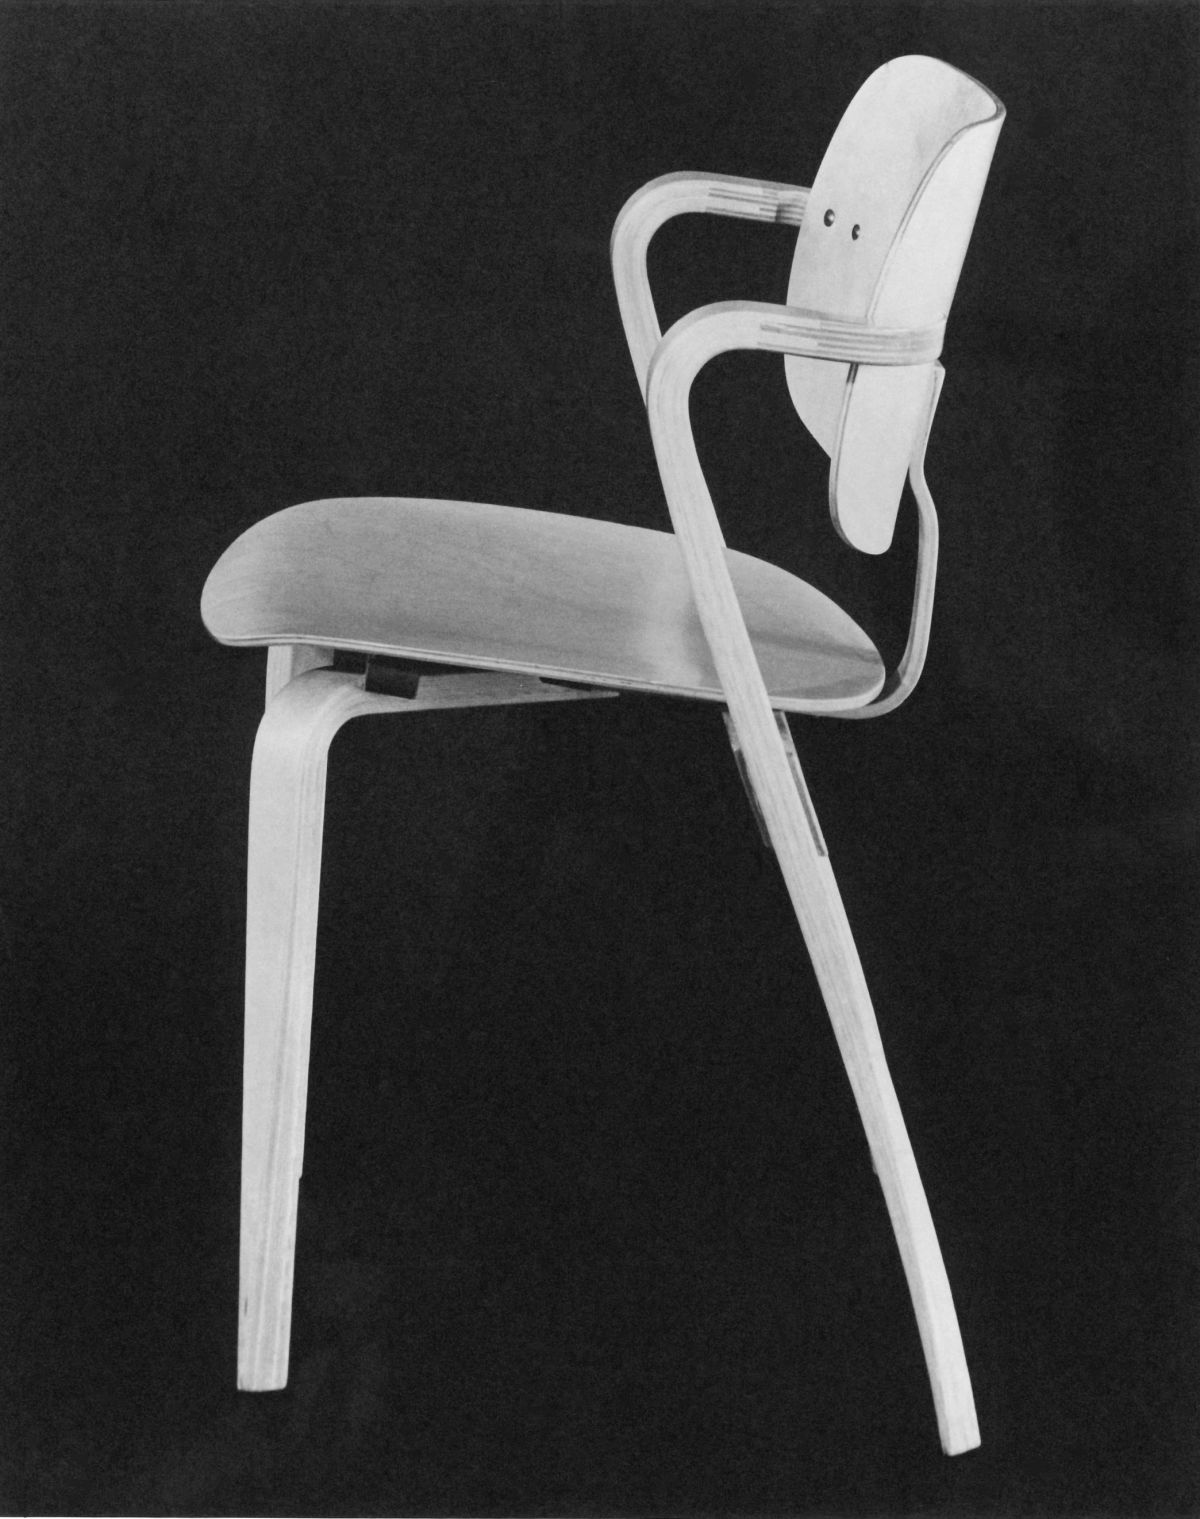 Aslak_Chair_Ilmari_Tapiovaara_1958_photo_Kuvakiila_Designmuseum-3954878